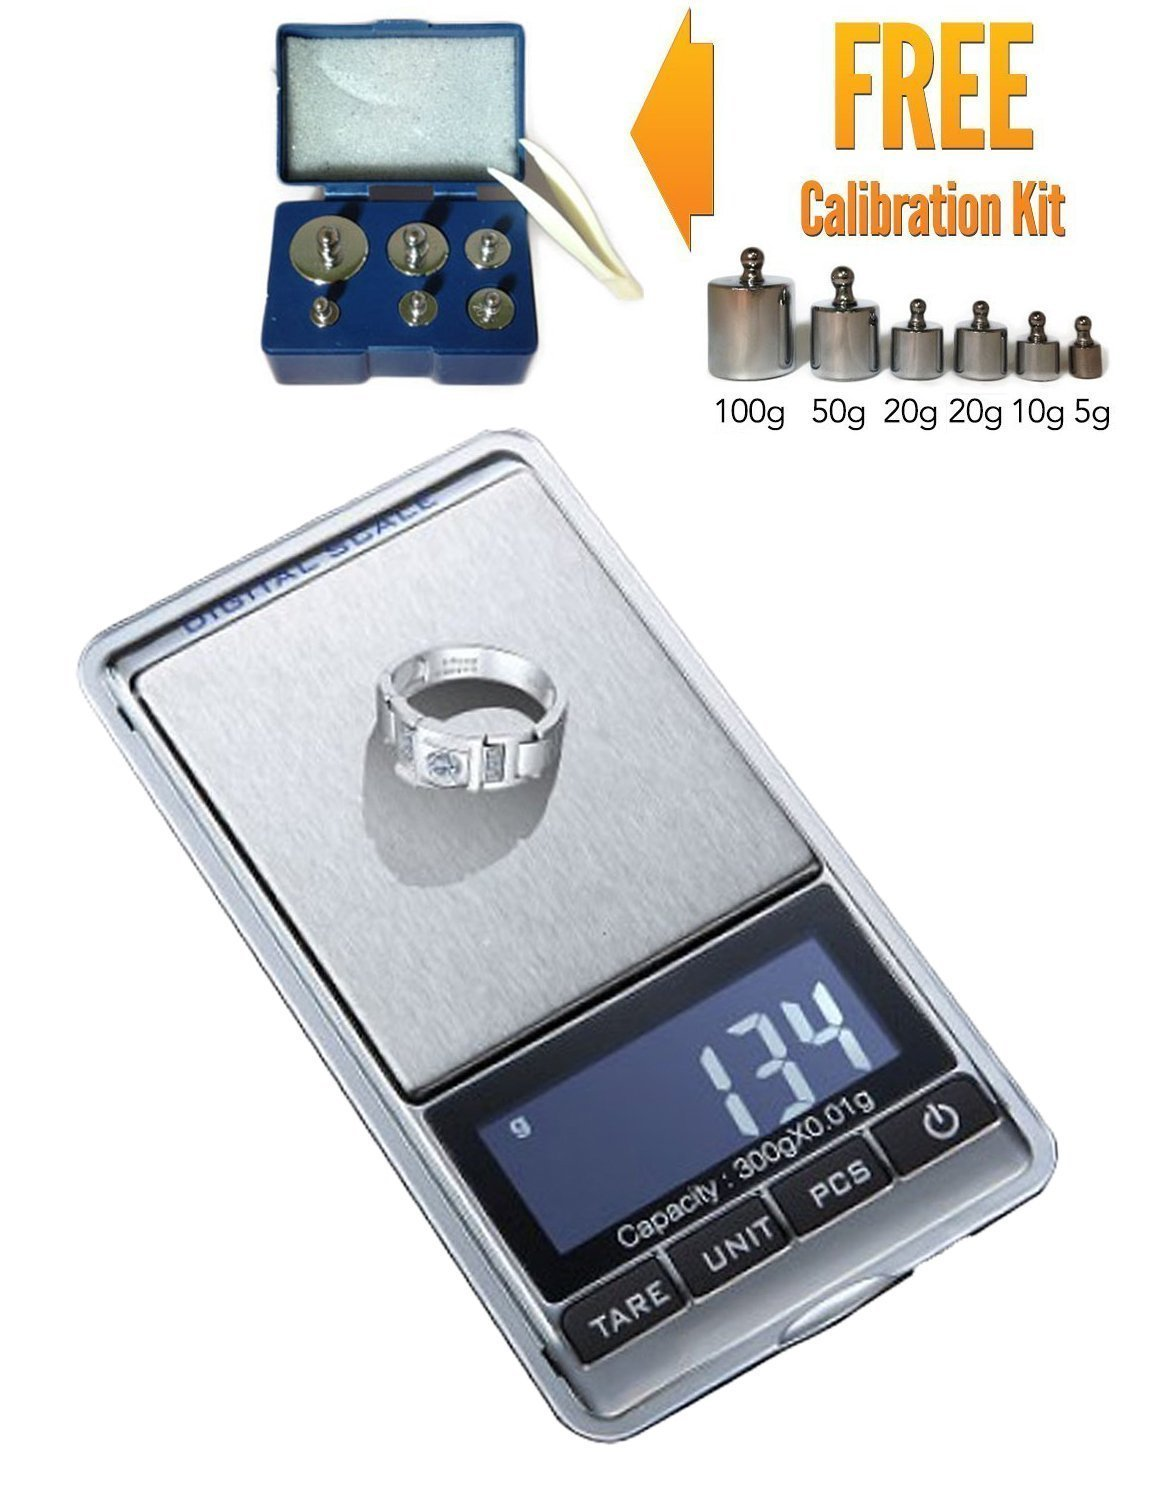 300g x 0.01g Mini Digital Jewelry Pocket GRAM Scale LCD + M2 Calibration Weight Kit - with Retail Packaging Luckystone 38758802